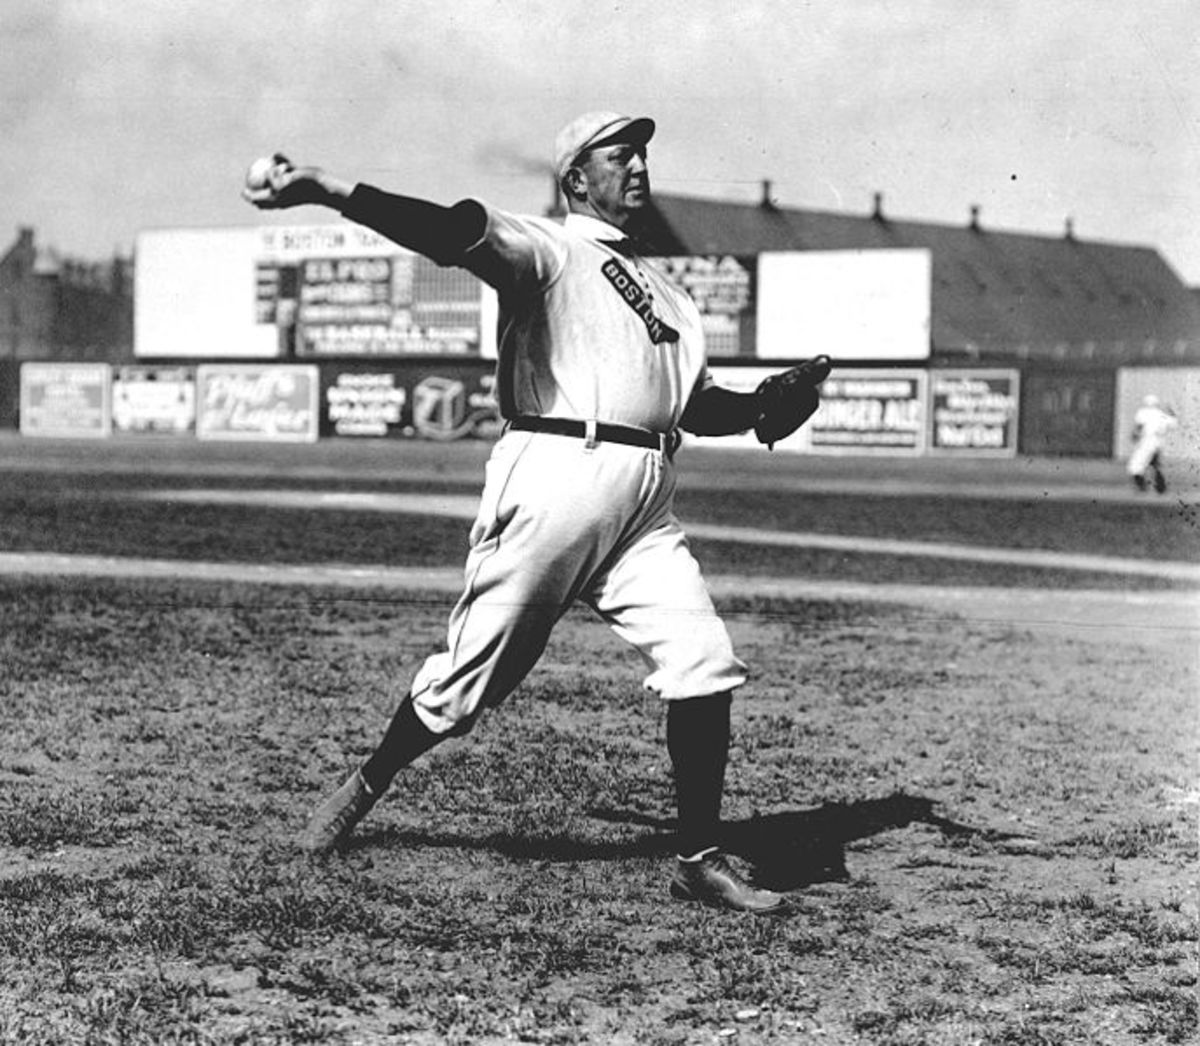 Cy Young pitching, 1908.